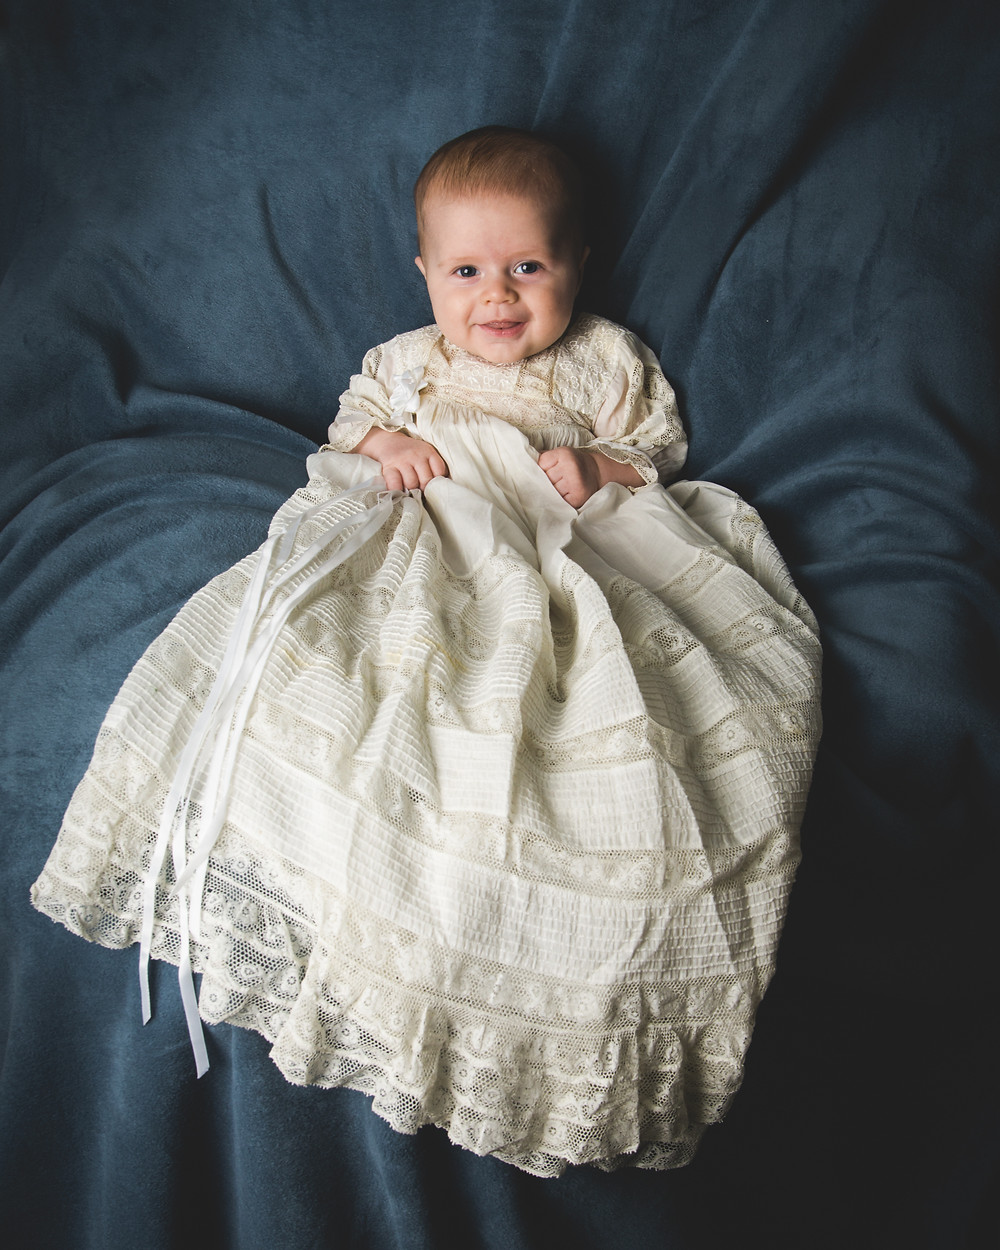 Christening Portrait in Christening Gown taken by Madelin Zaycheck of Memory Me Studio in St. Paul, Minnesota